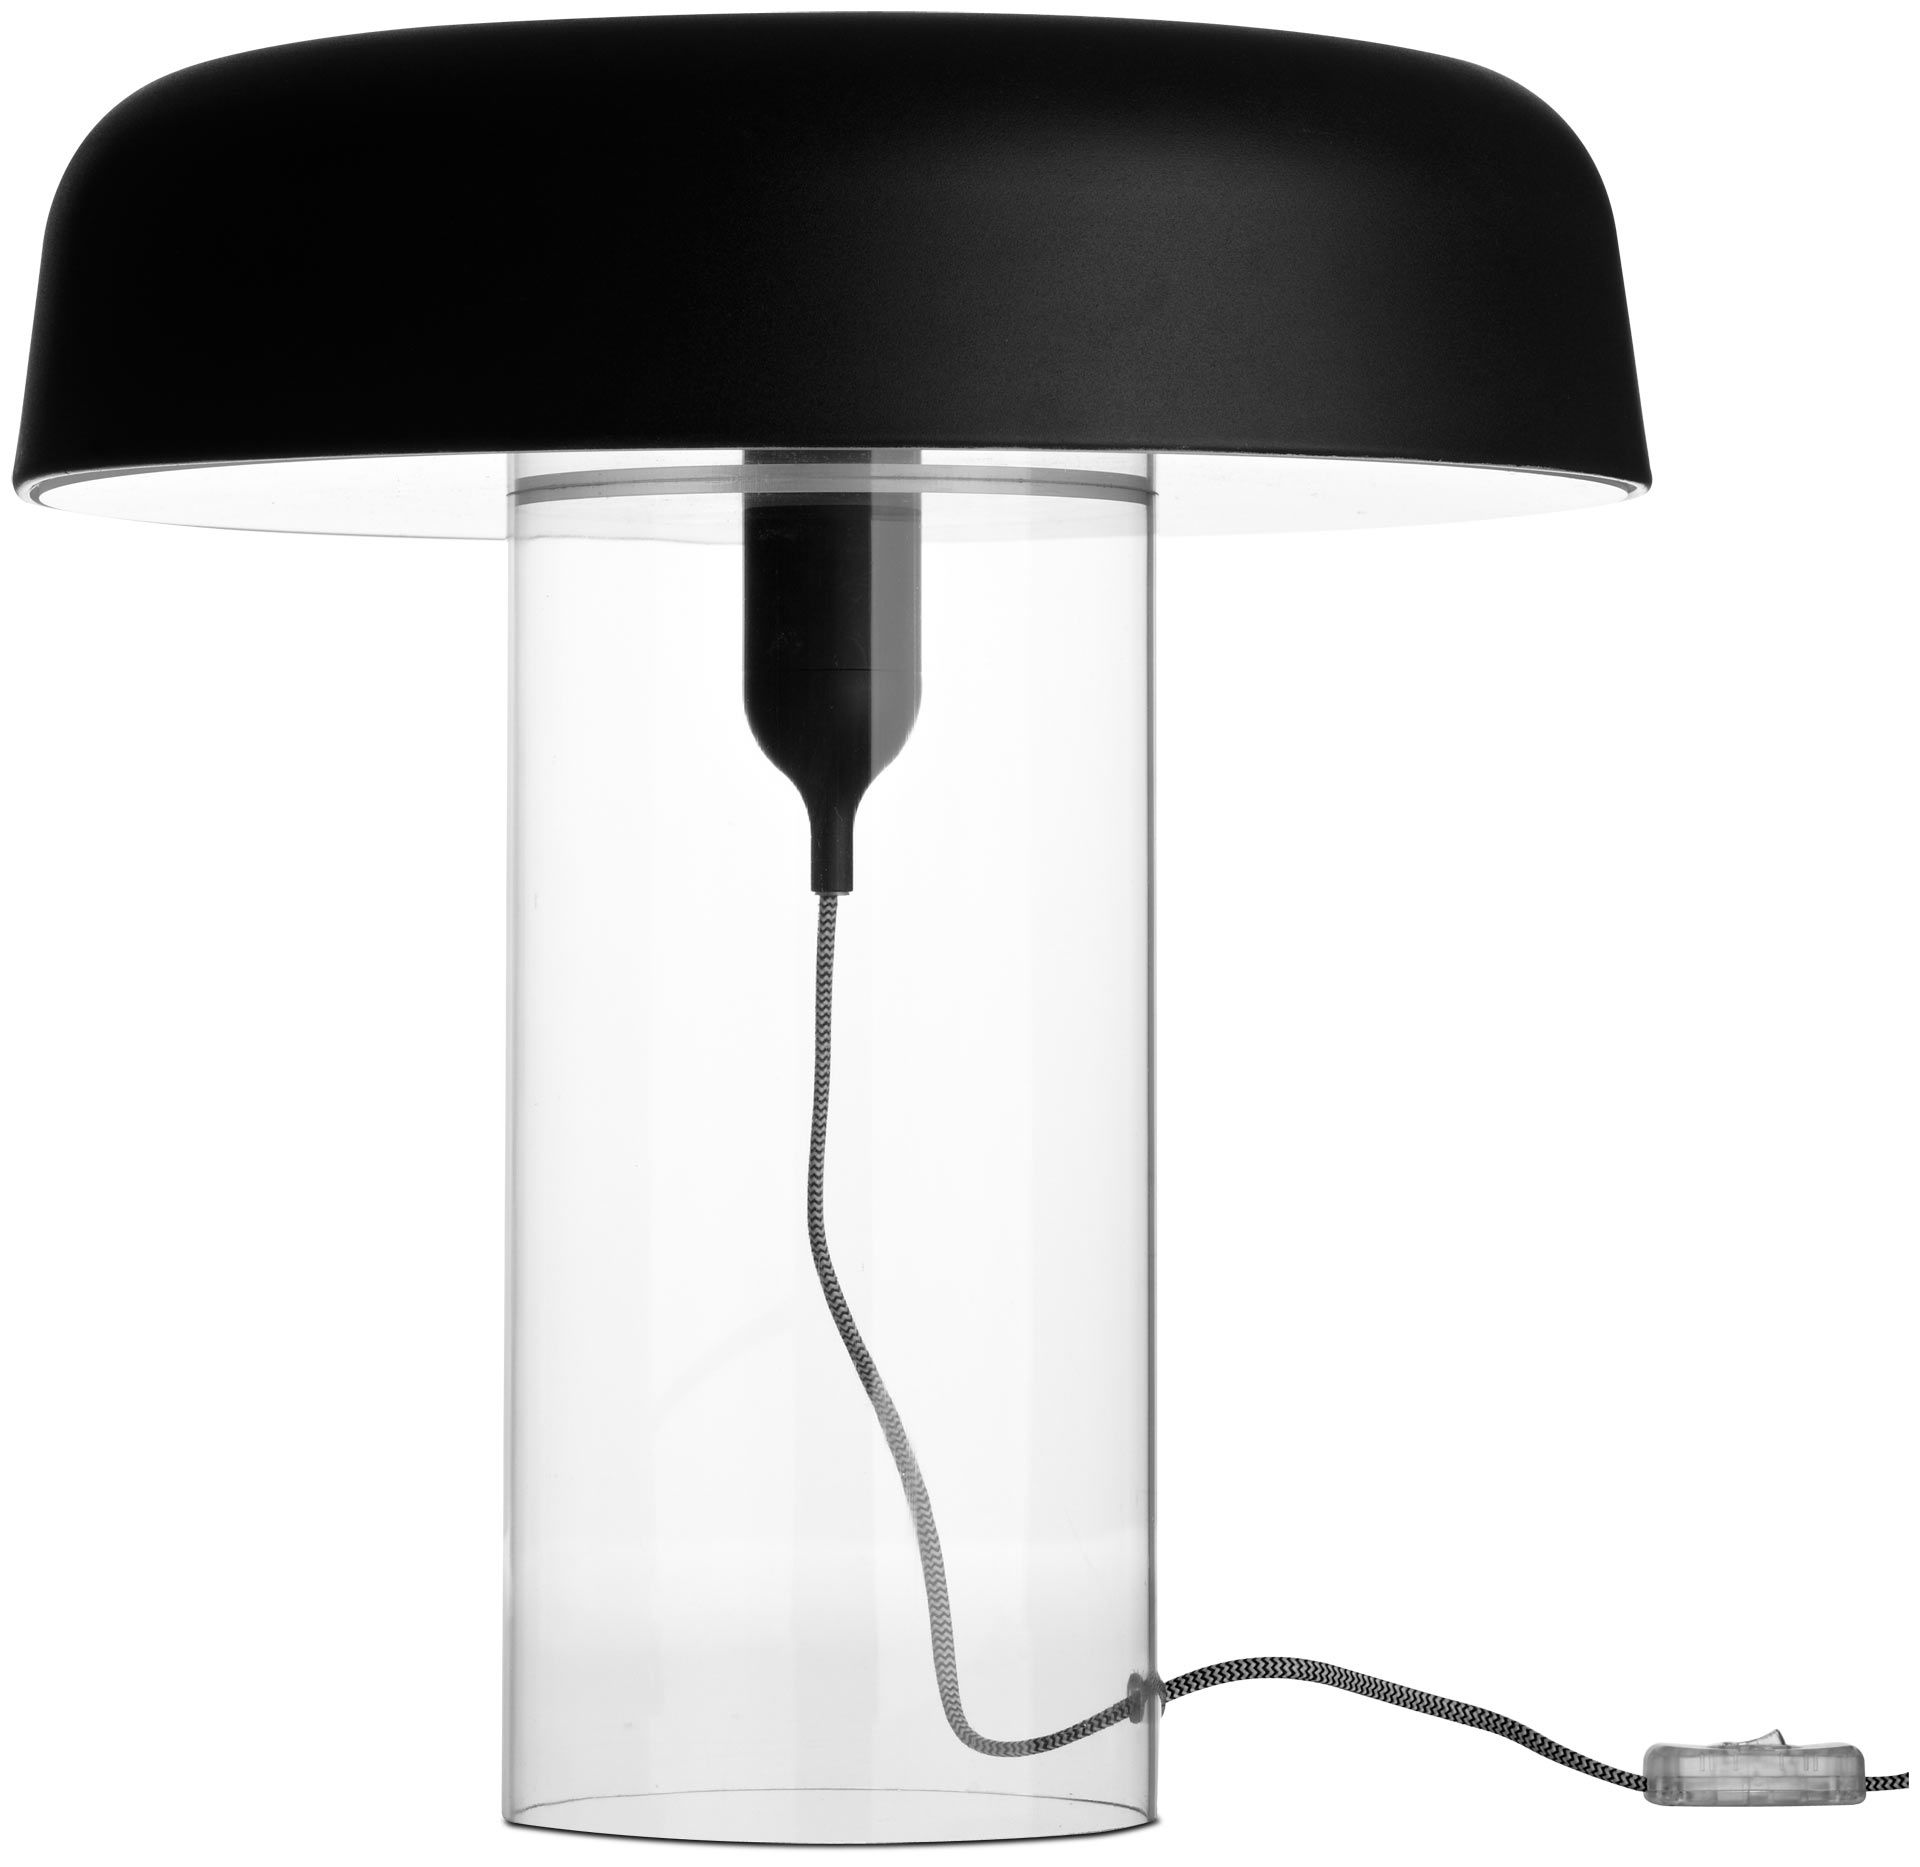 boconcept goble lampe de table design avec un pied transparent modern modern table lamps. Black Bedroom Furniture Sets. Home Design Ideas